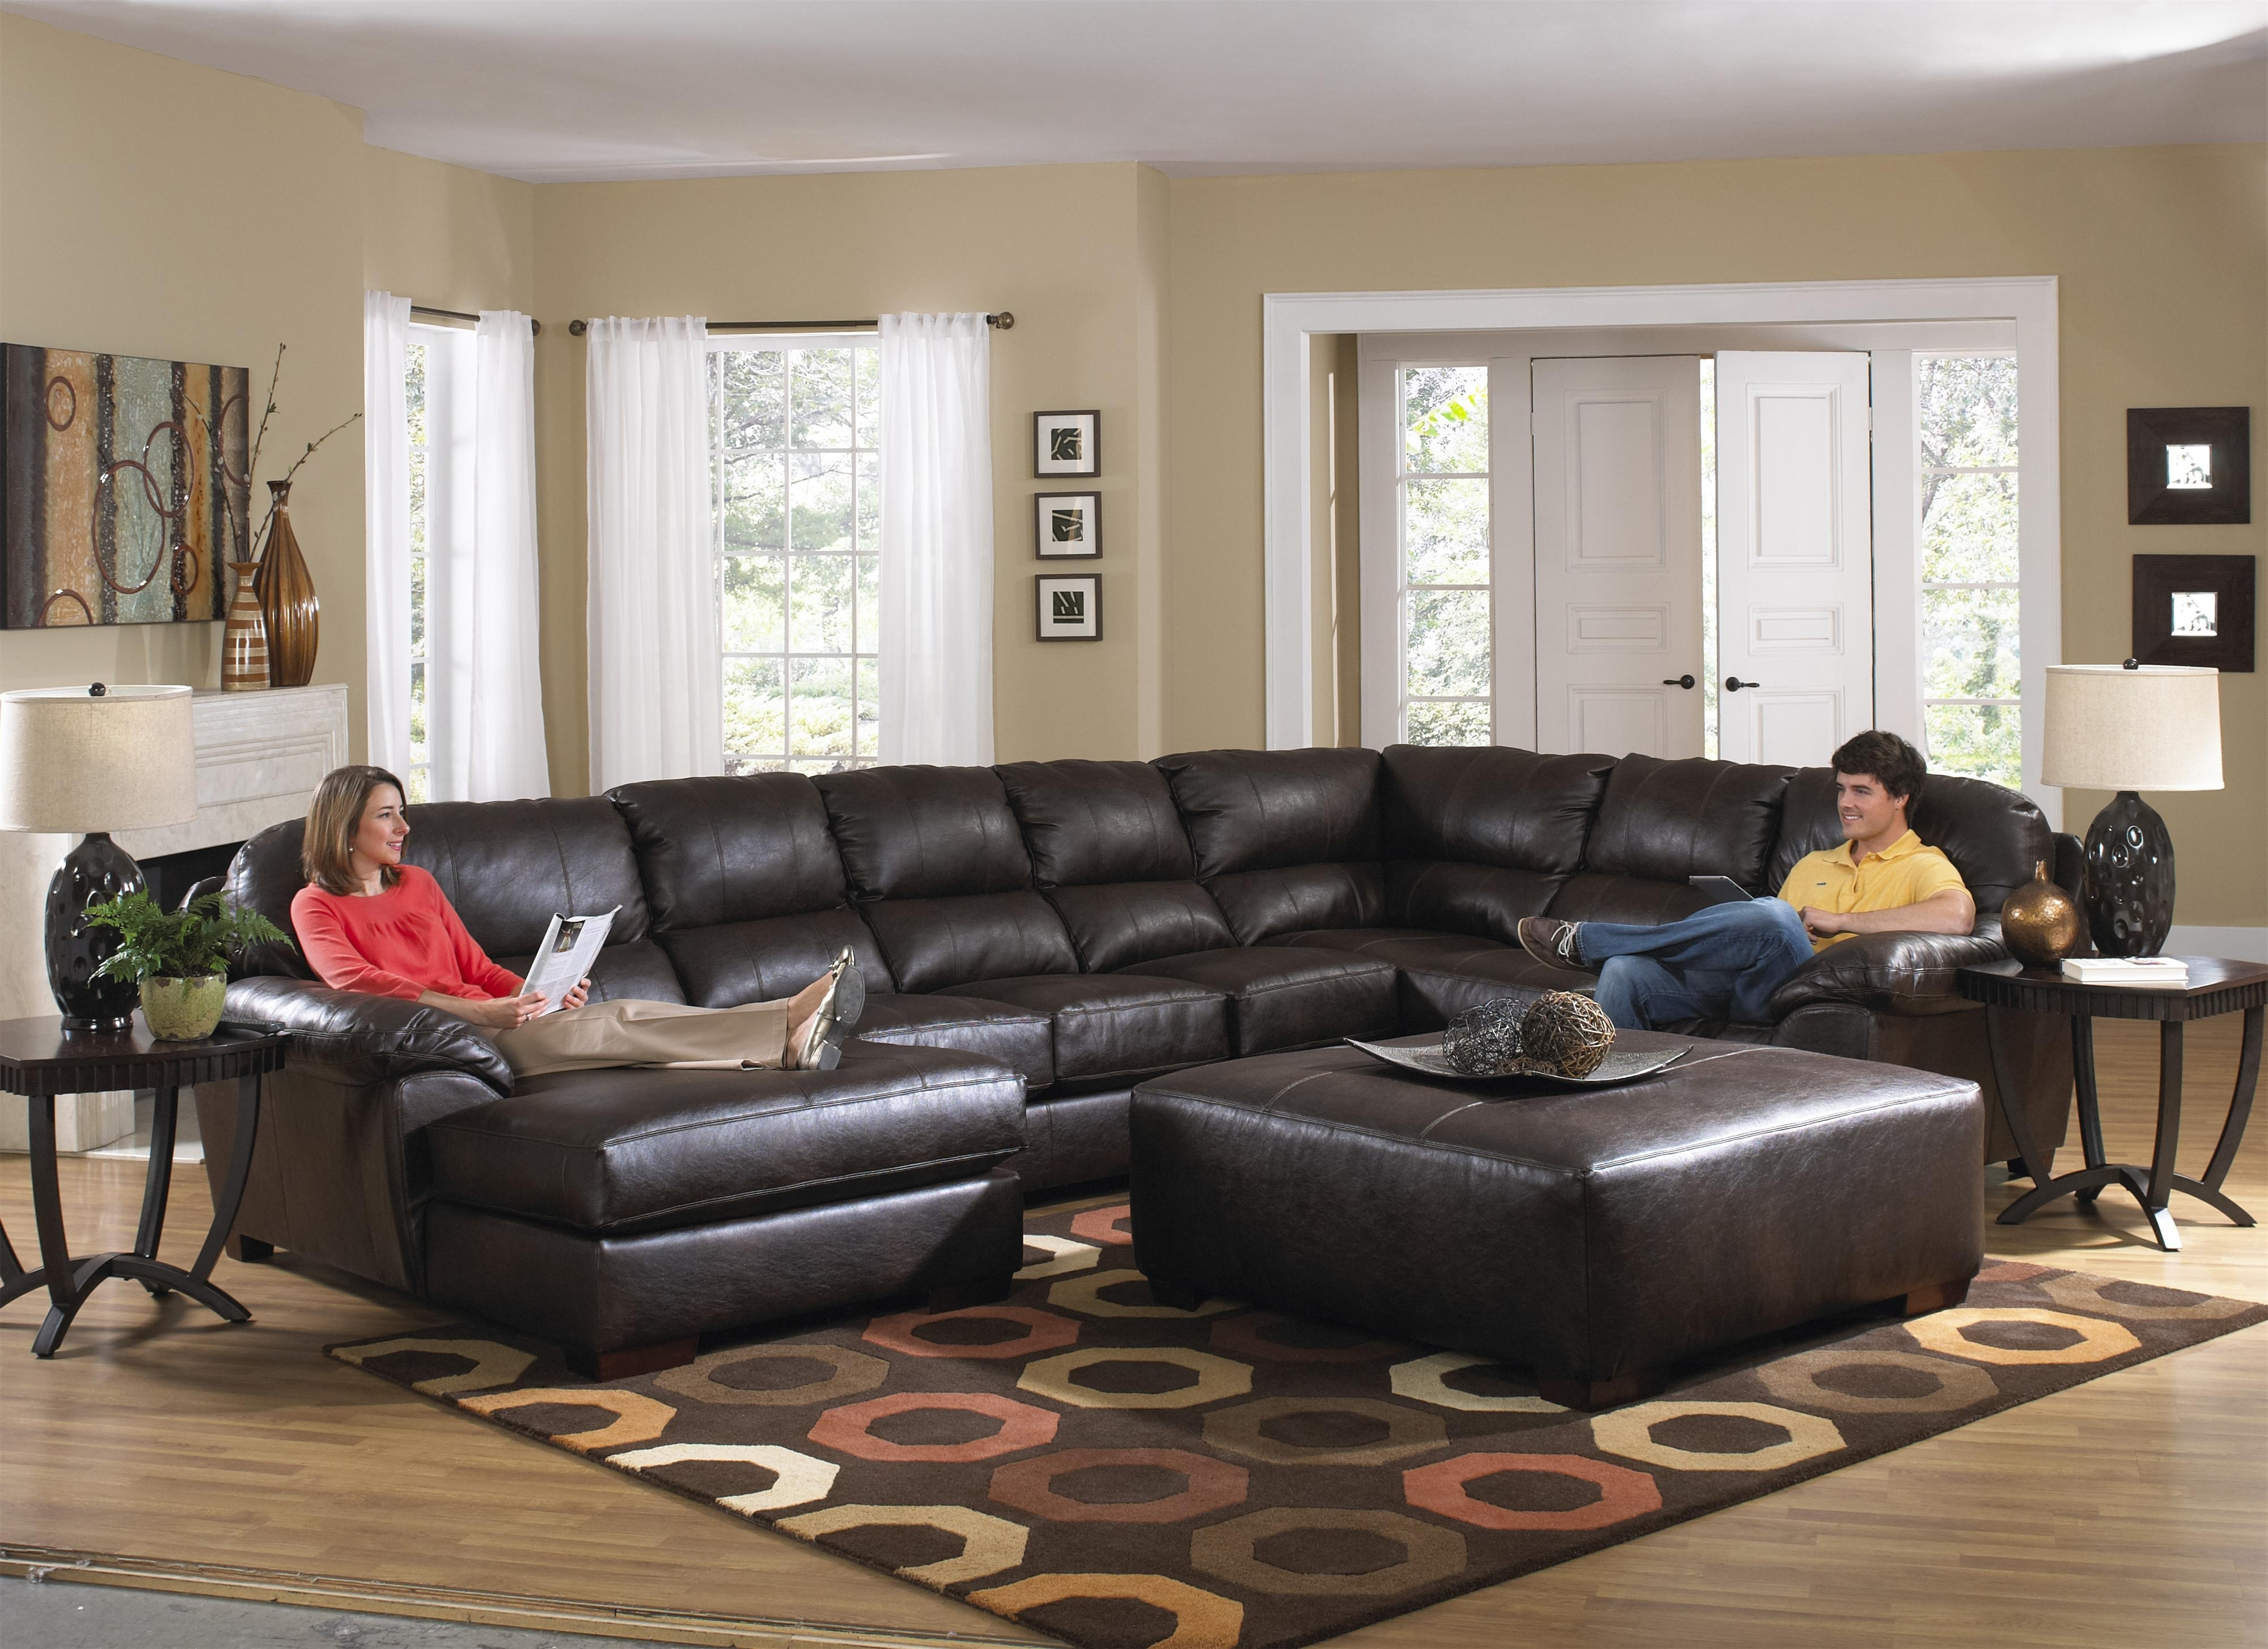 Most Current Sofa : Graceful Large Sectional Sofa With Chaise Leather Sofas Within Leather Sectionals With Chaise And Ottoman (View 16 of 20)